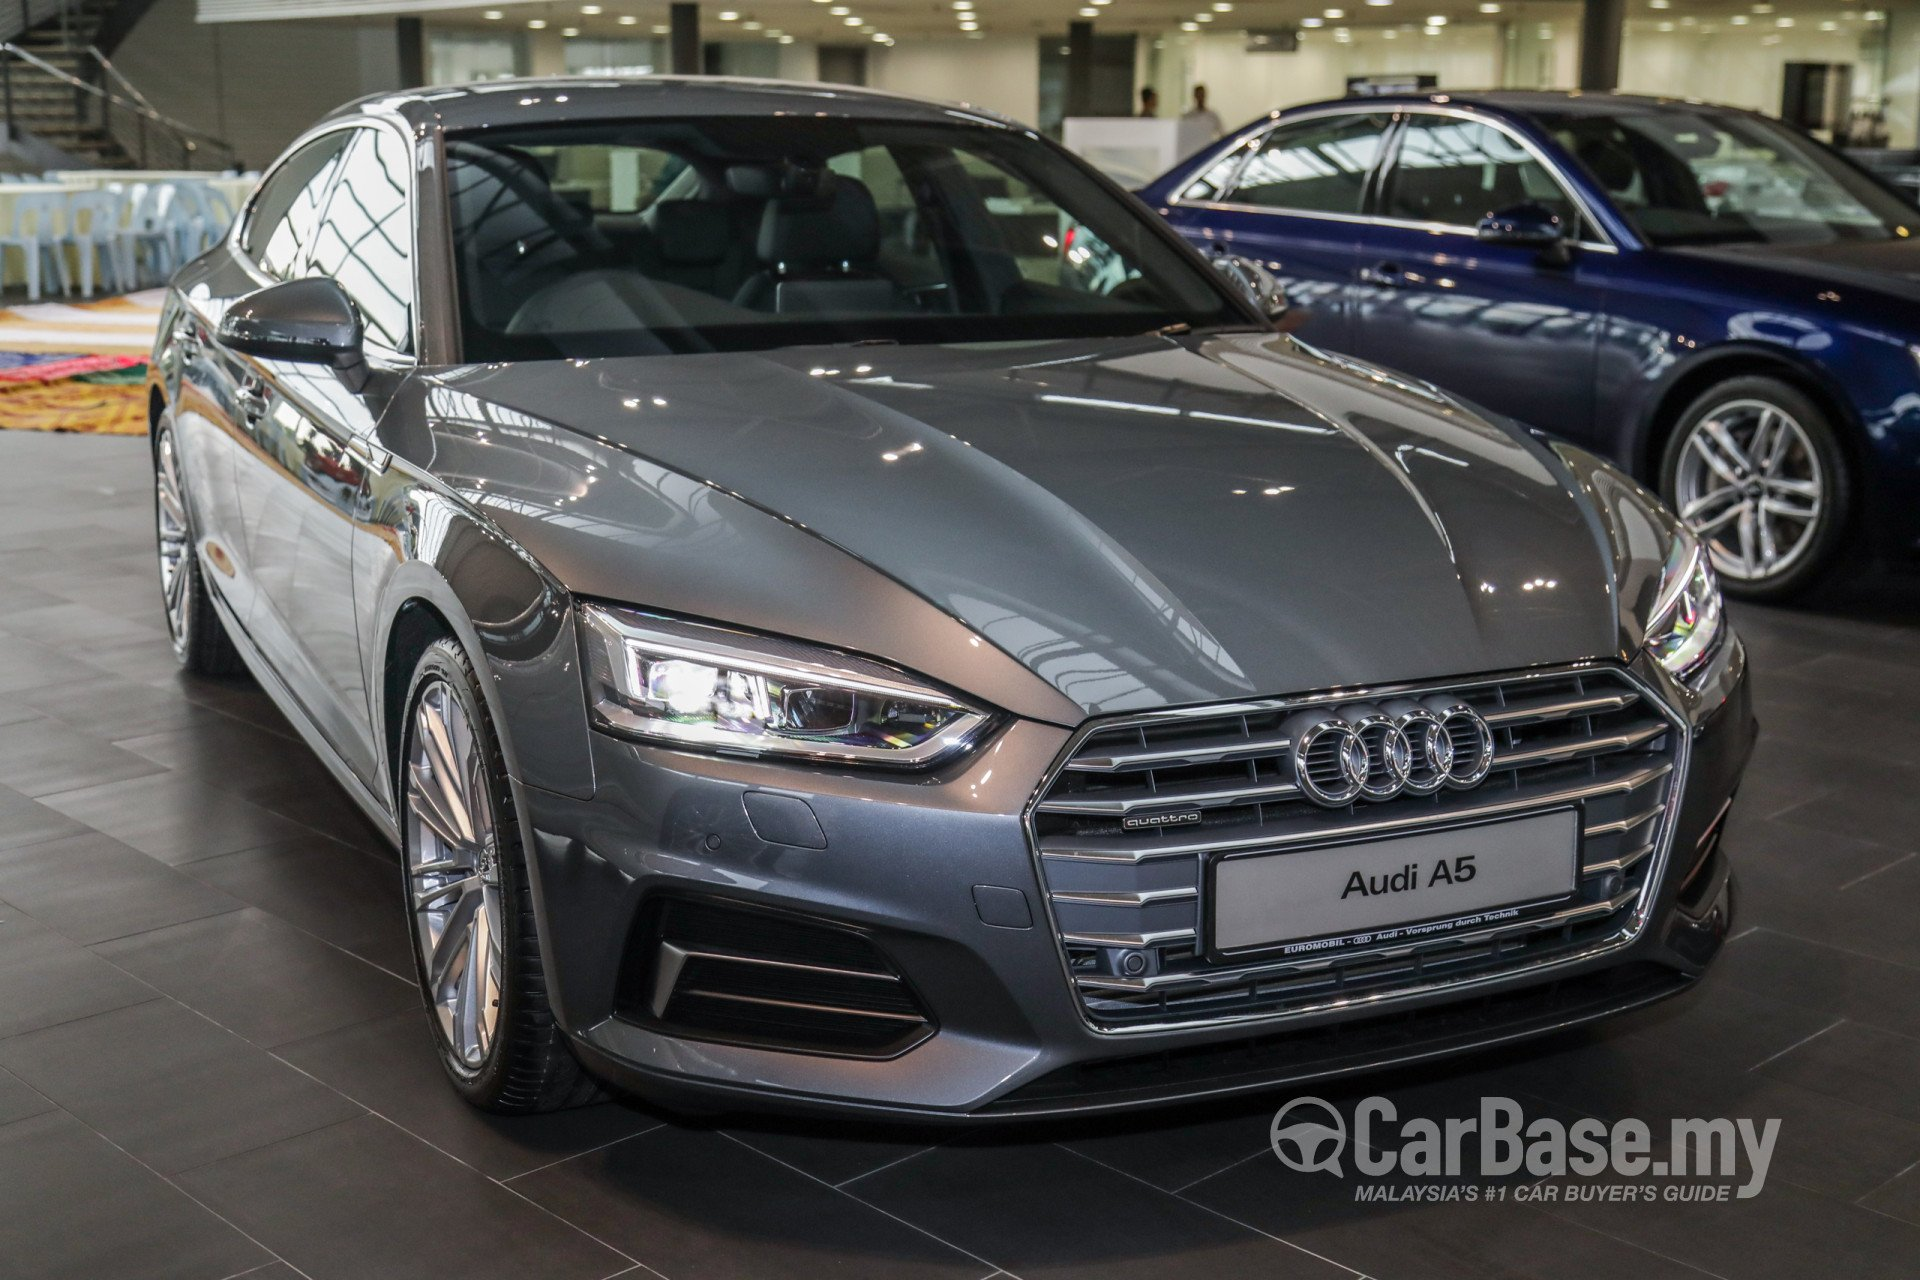 Audi A5 Sportback F5 2019 Exterior Image In Malaysia Reviews